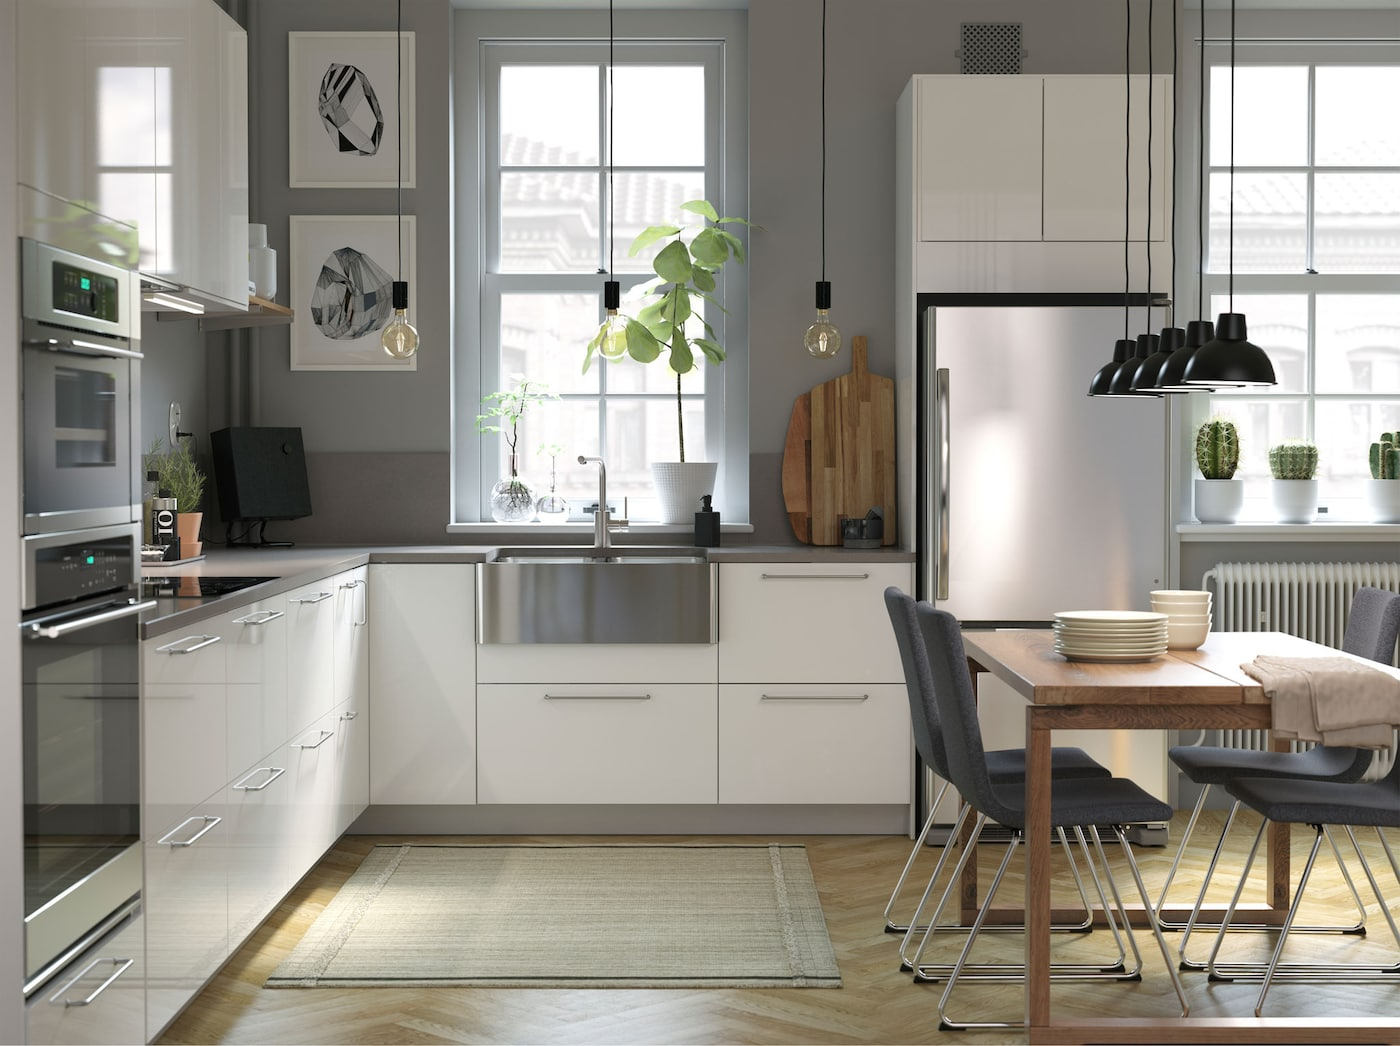 inspiration IKEA inspiration inspiration IKEA Kitchen inspiration Kitchen IKEA IKEA Kitchen Kitchen Kitchen inspiration Kitchen IKEA XiOPuZk